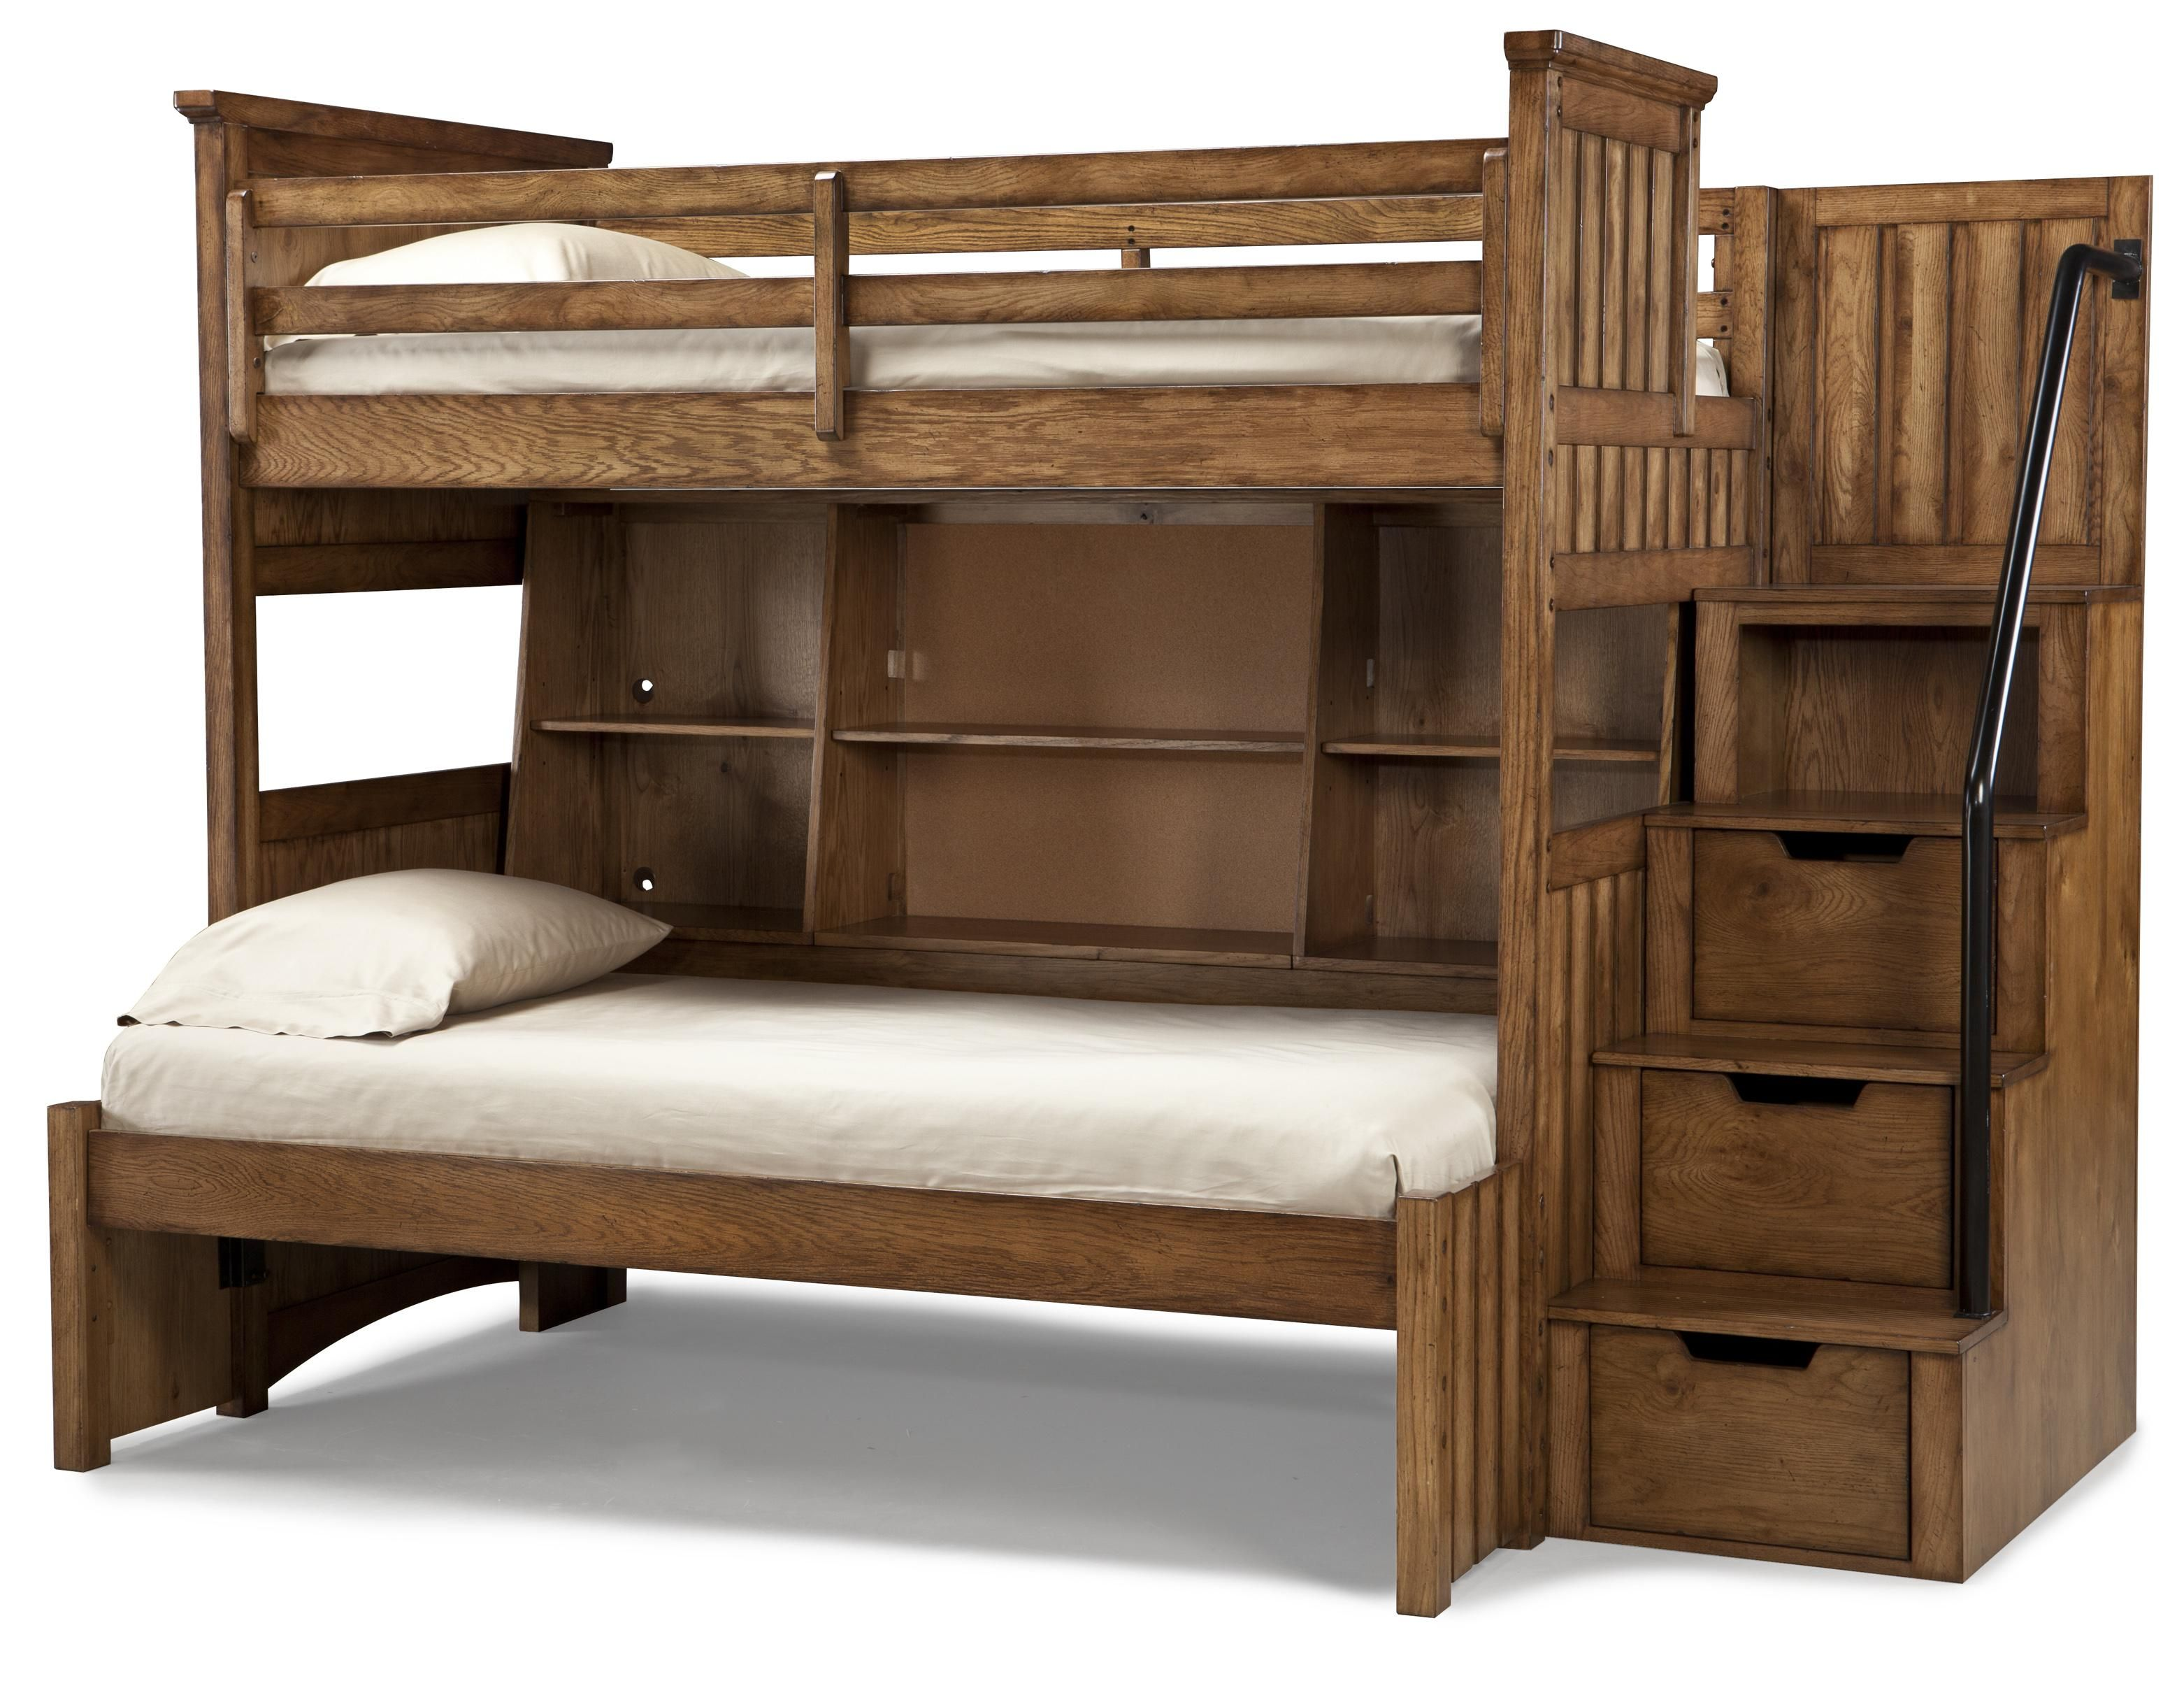 furniture walmart australia desk stairs plans bed canada full beds bedroom kids bunk beneficial wooden all free couch combo over apartments marvelous with and loft